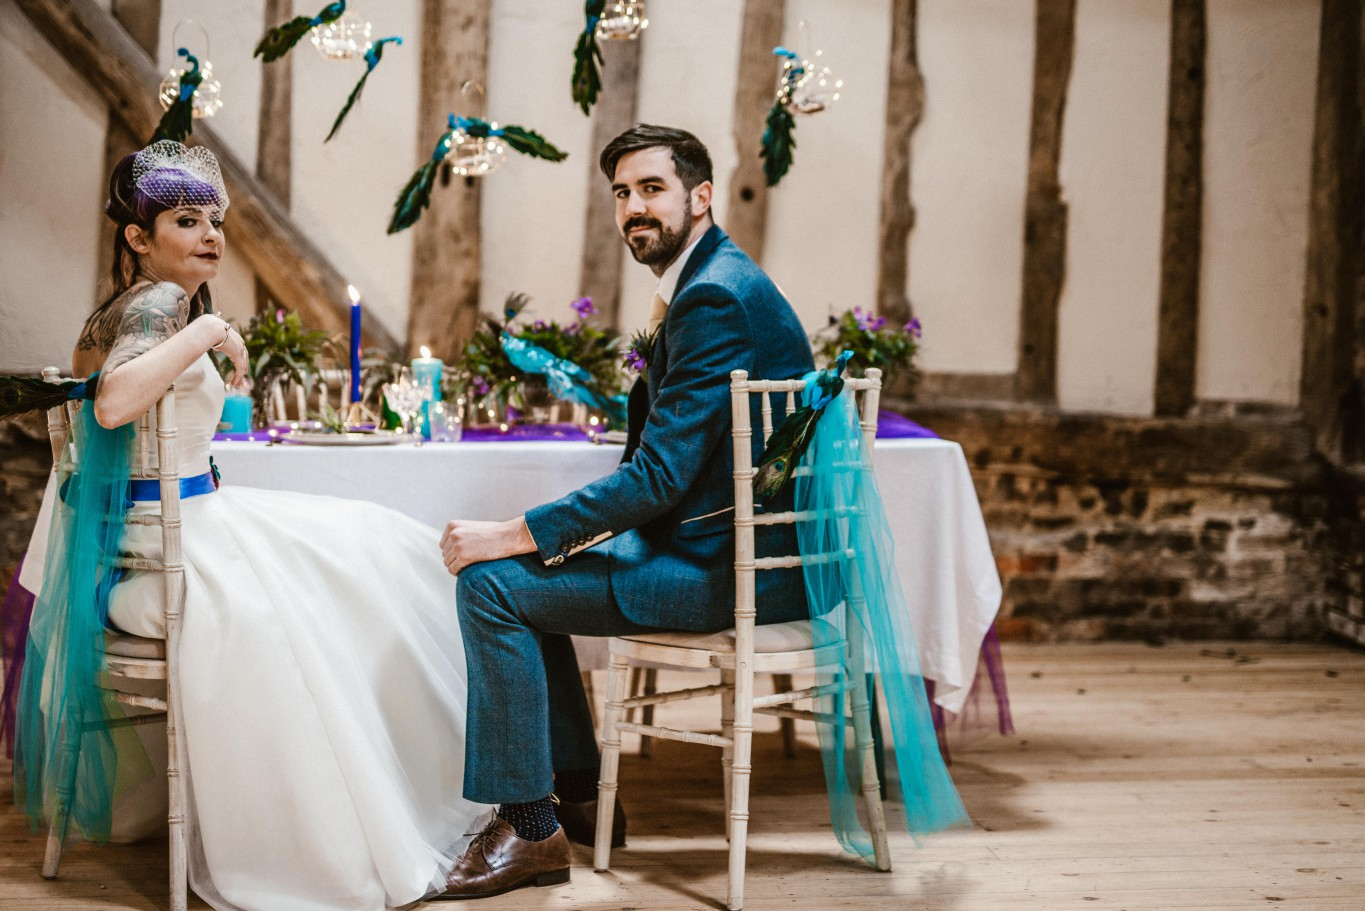 Peacock barns - alternative unconventional wedding photoshoot - rustic decadent - bride and groom at table